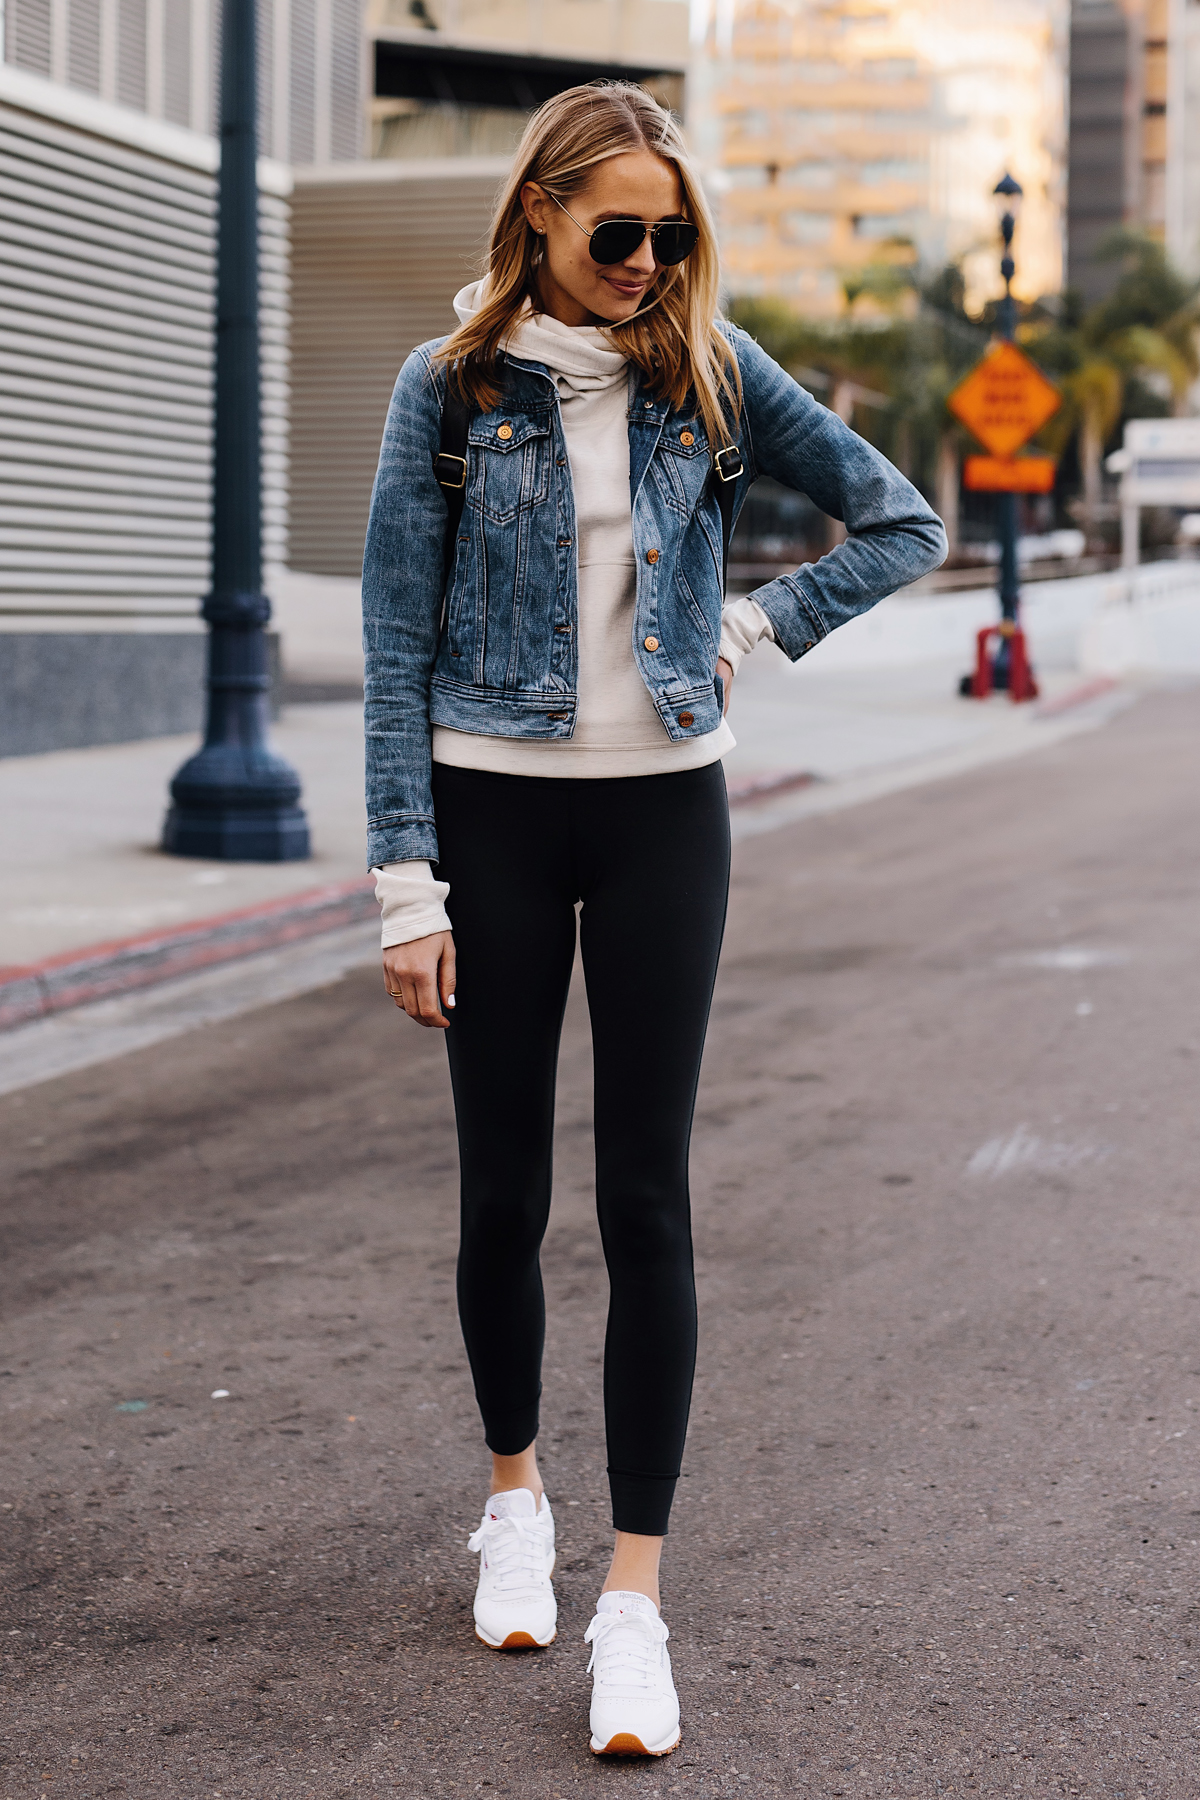 Fashion Jackson Athleisure Outfit Denim Jacket Grey Sweatshirt Black Leggings Reebok Classic White Sneakers Fashion Jackson San Diego Fashion Blogger Street Style